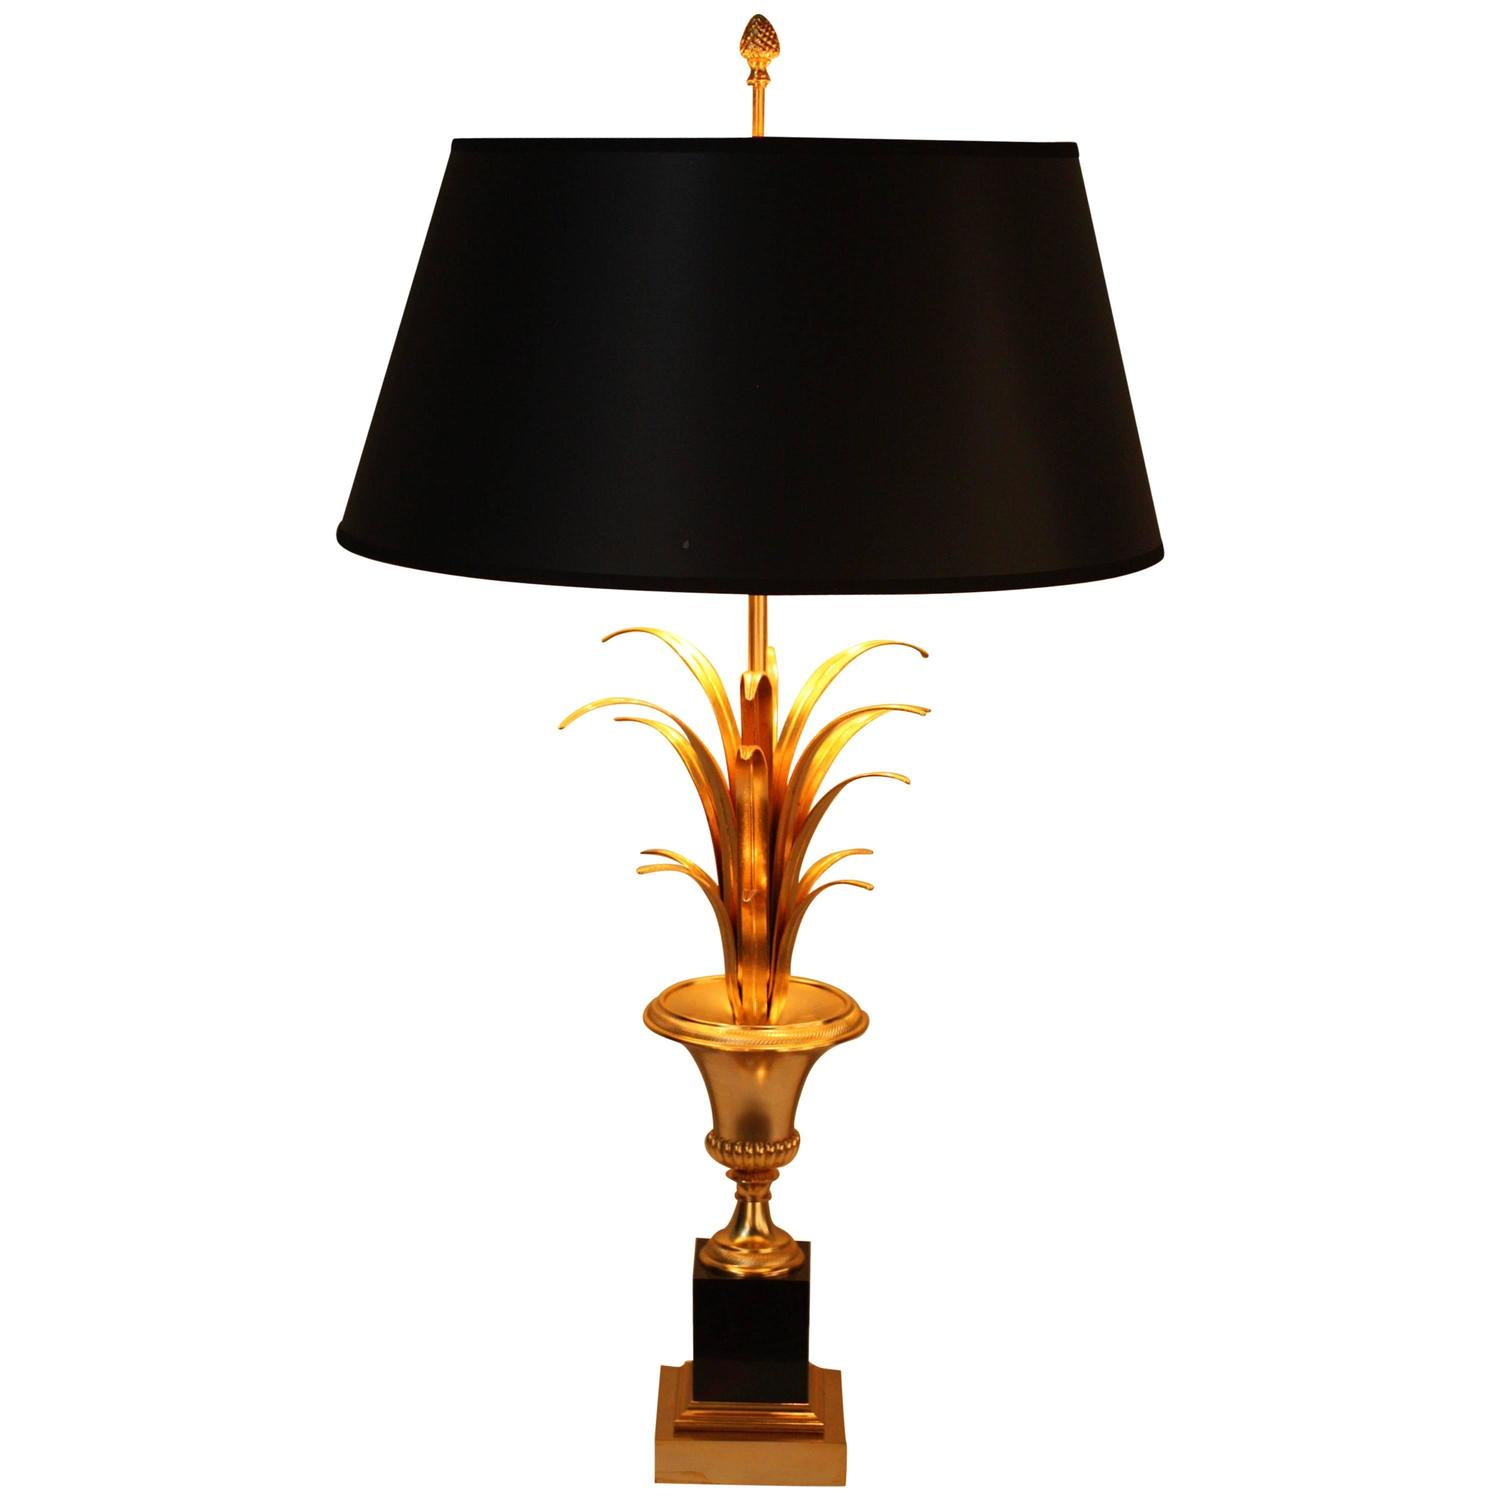 maison charles palm tree table lamp at 1stdibs. Black Bedroom Furniture Sets. Home Design Ideas